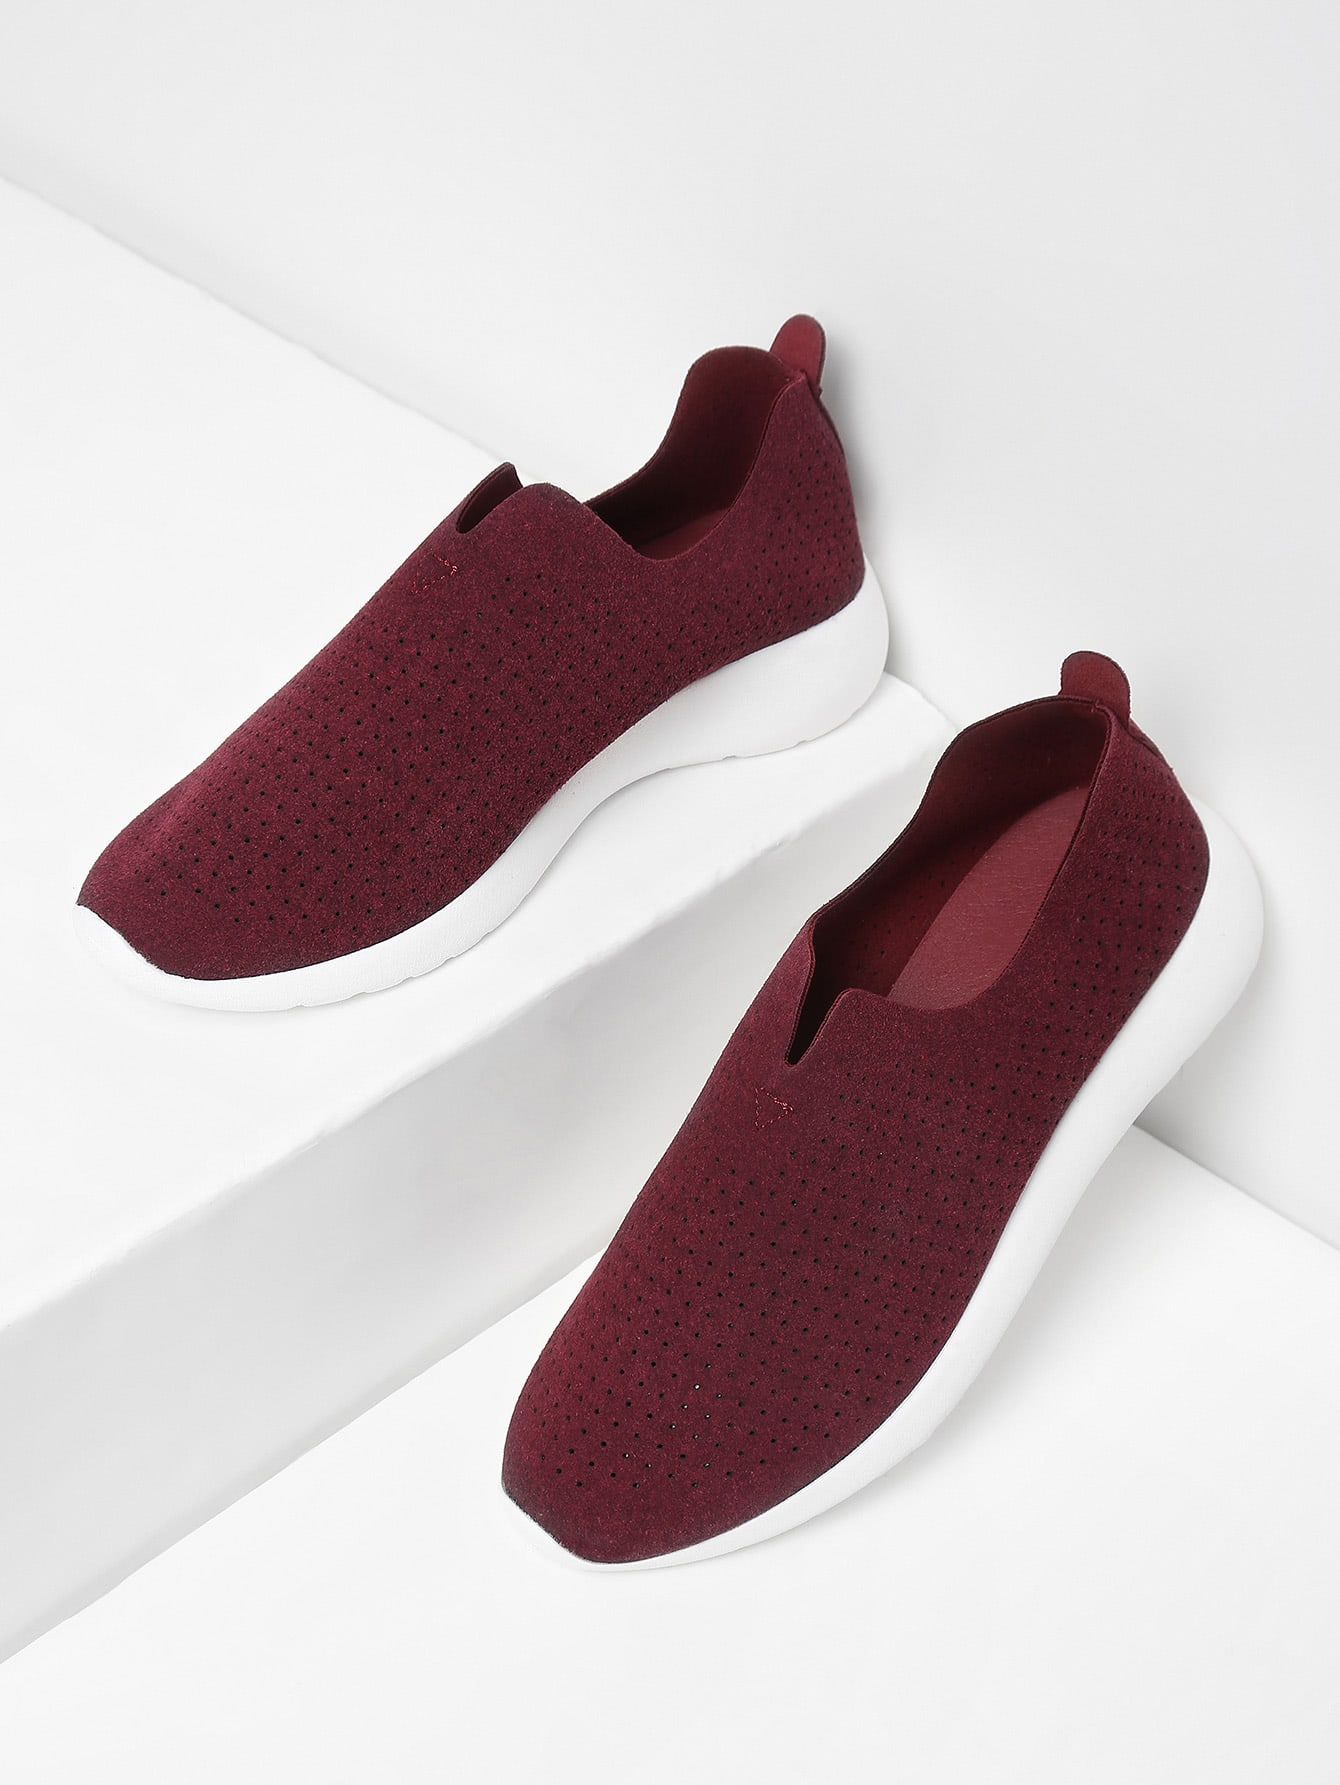 Suede Low Top Slip On Sneakers men flats sneakers outdoor slip on causal fashion comfortable canvas low top shoes